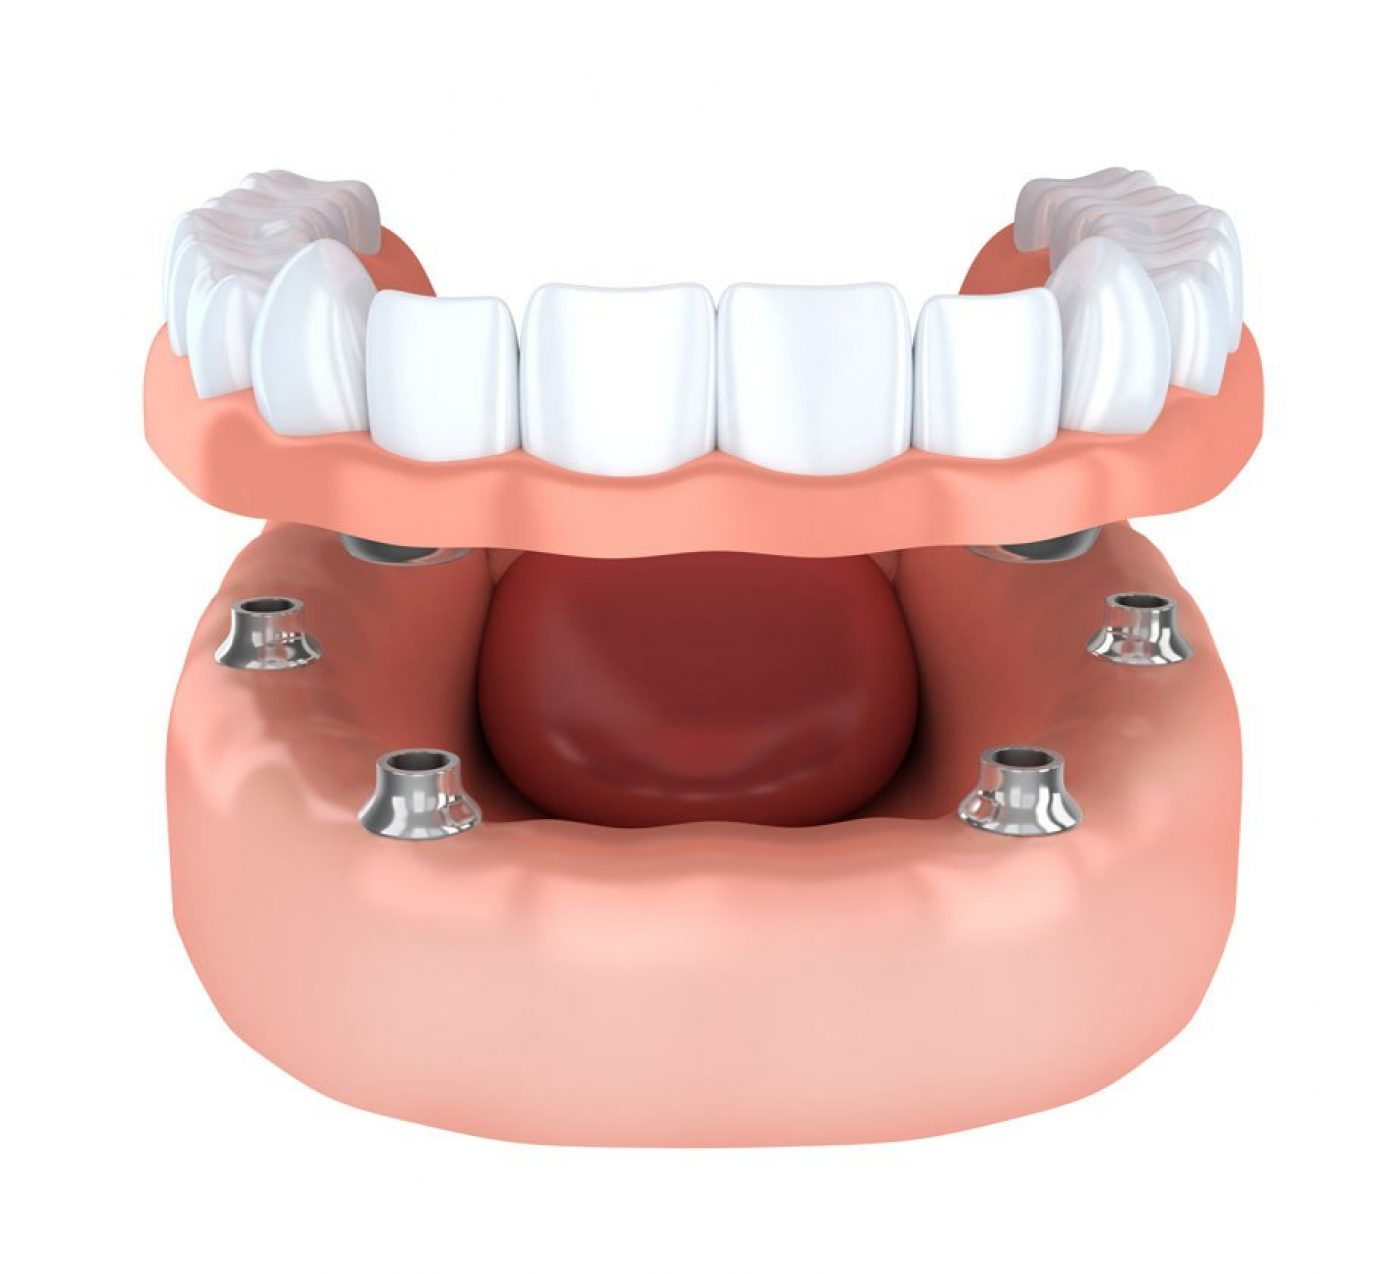 Wootton Bridge Dental Implants Sameday